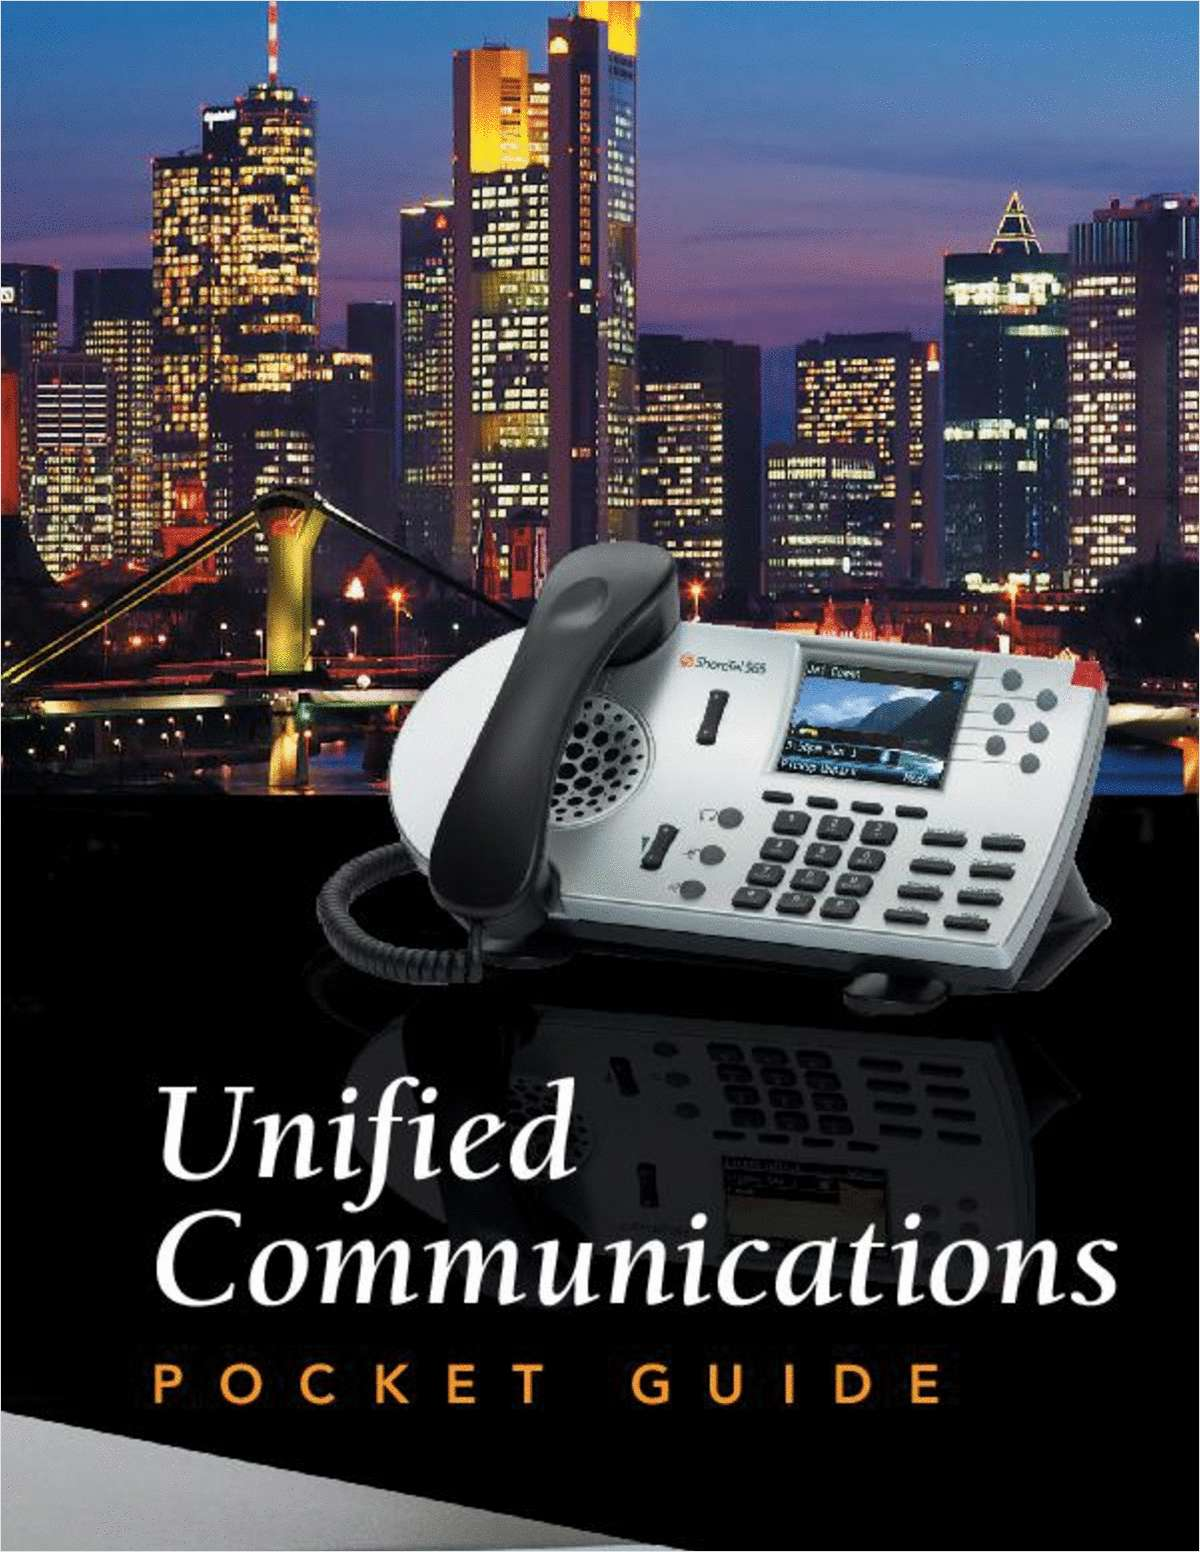 Unified Communications Pocket Guide